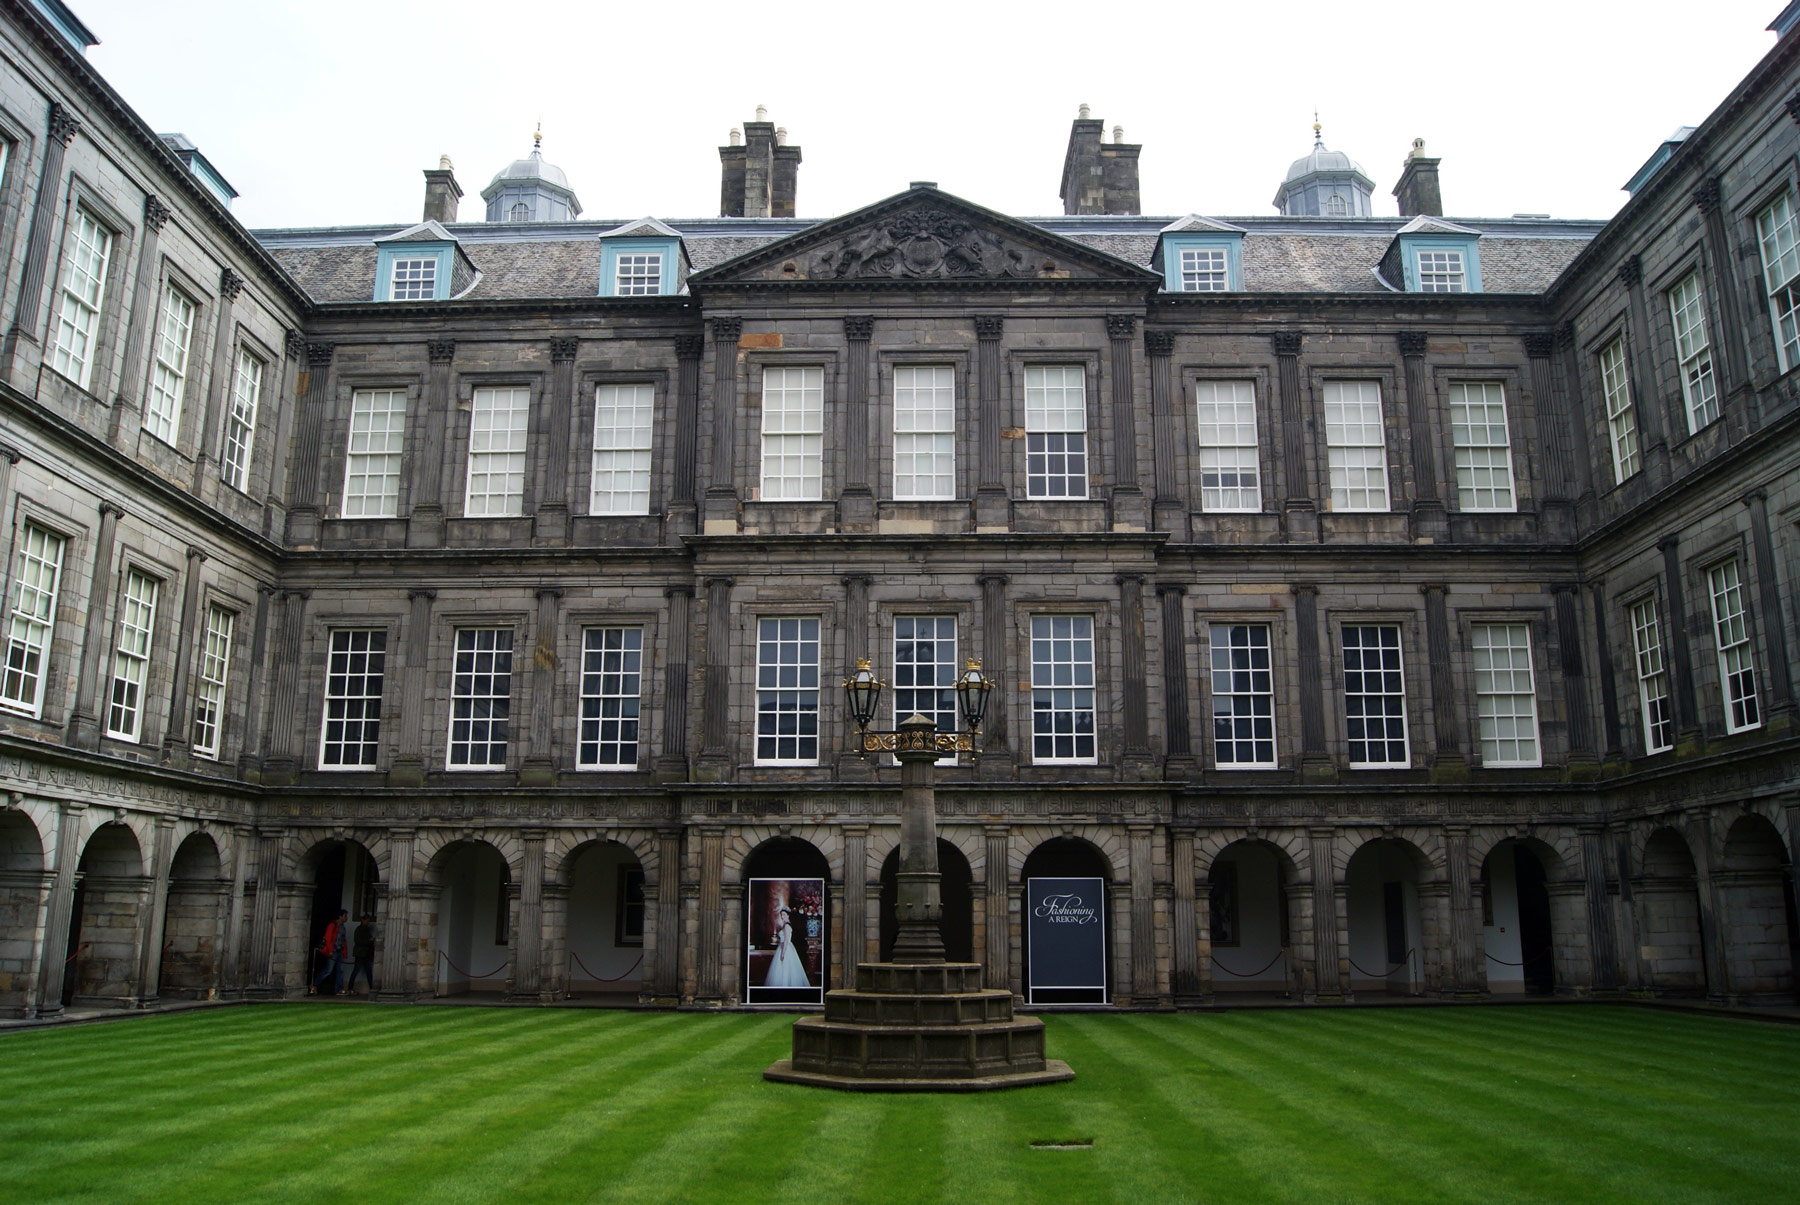 photo Ecosse Edimbourg ville Palace of Holyroodhouse palais